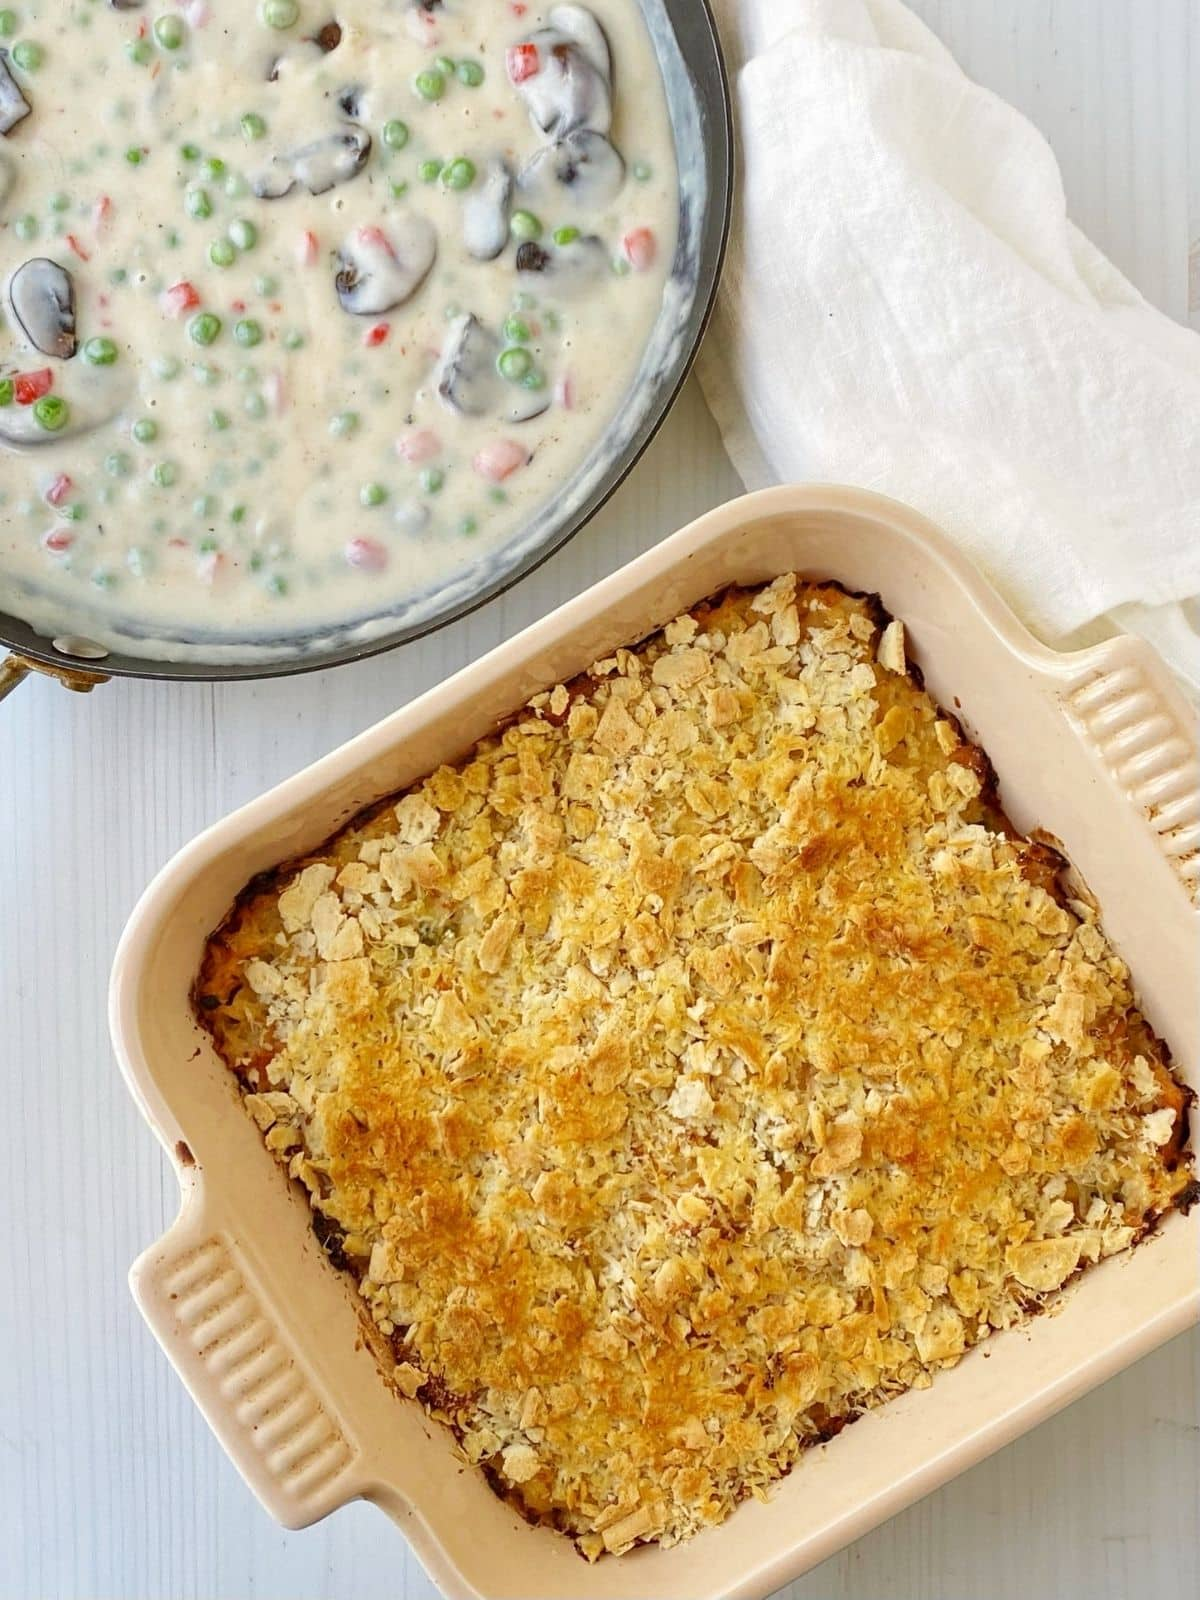 salmon loaf in baking dish next to skillet of cream sauce